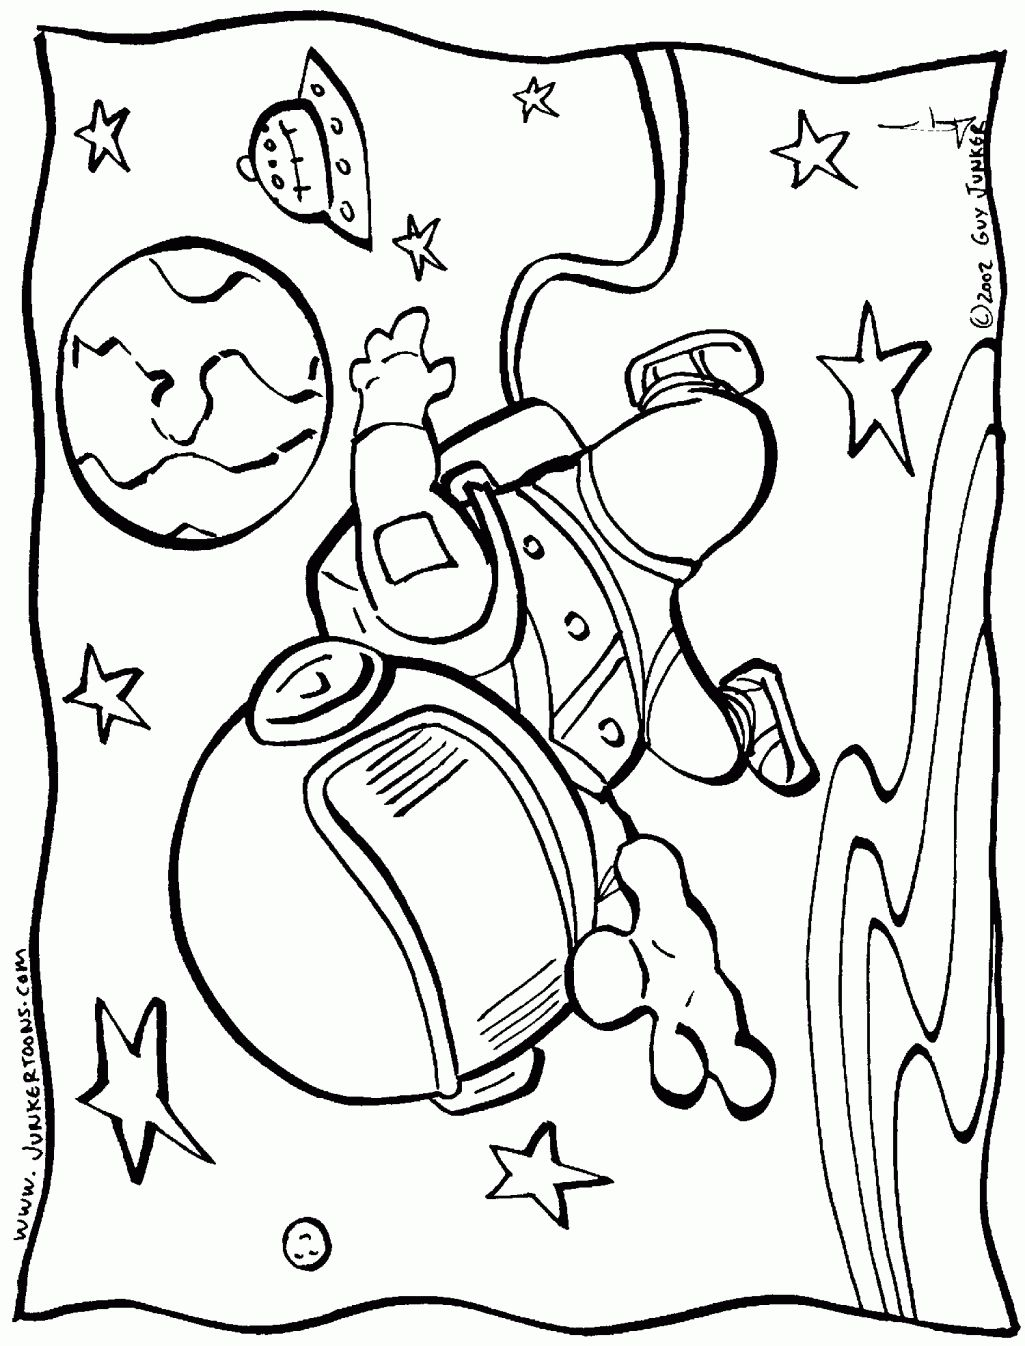 chemistry coloring page a free science coloring printable space